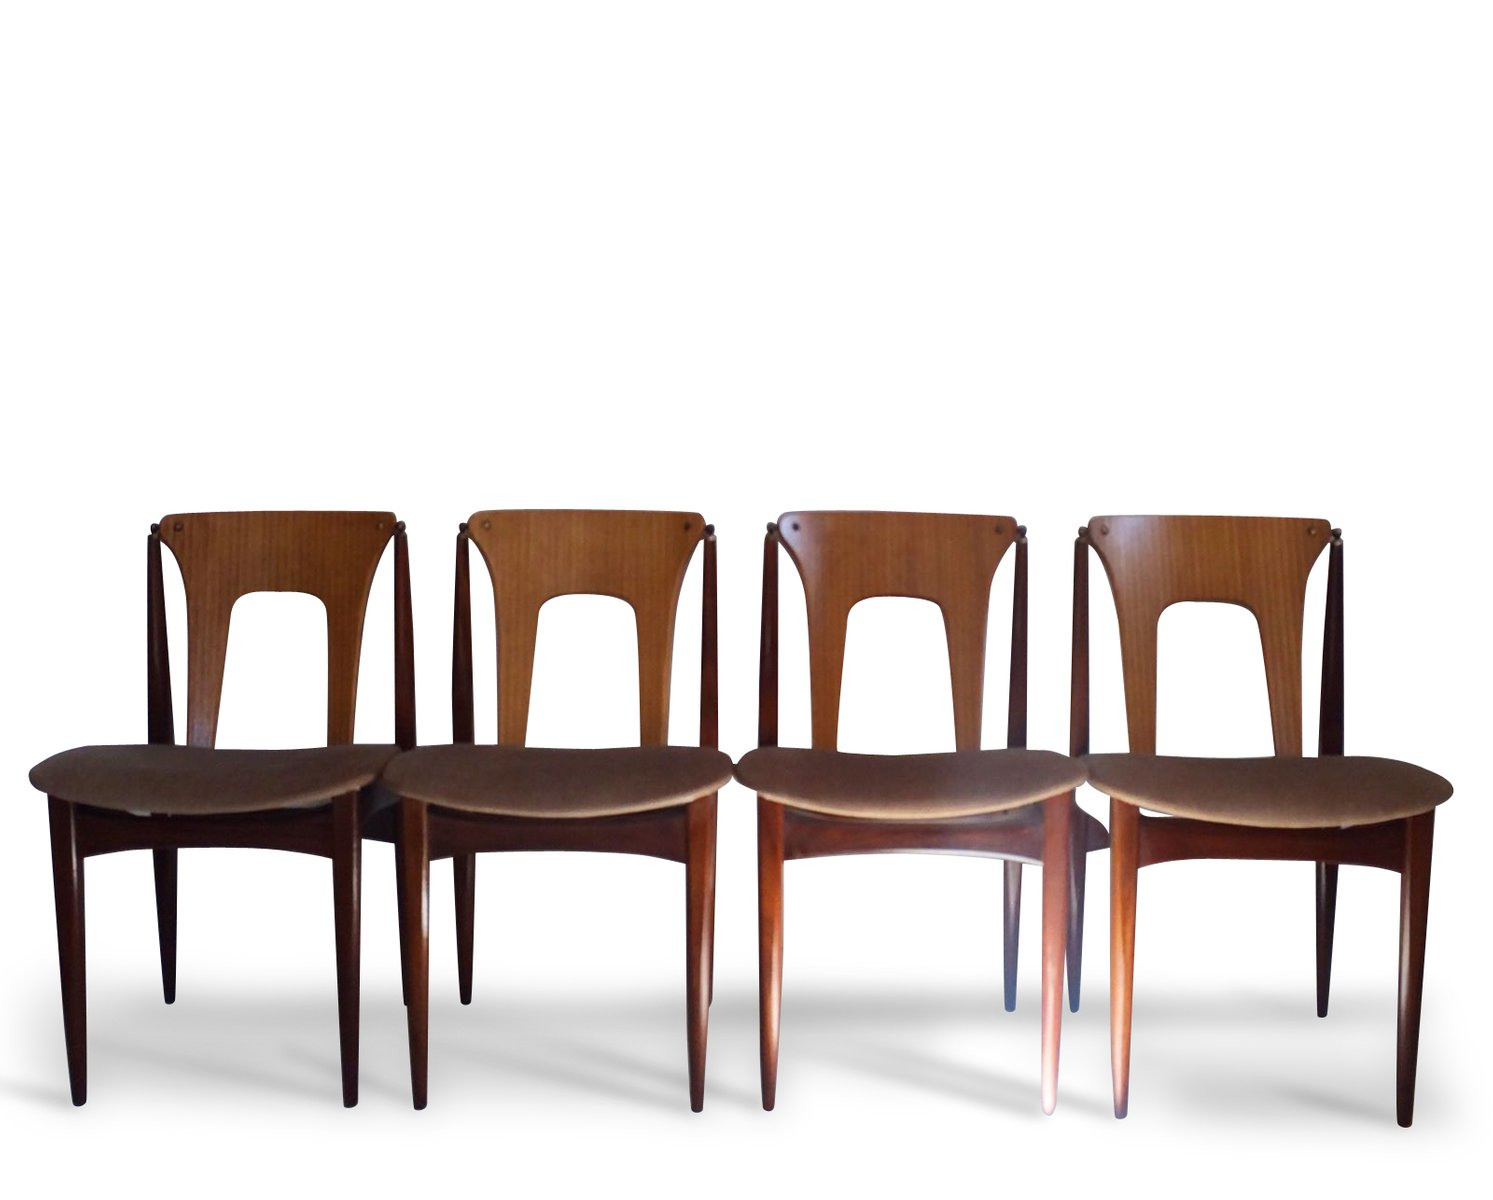 mid-century dining chairs by elliotts of newbury, set of 4 for